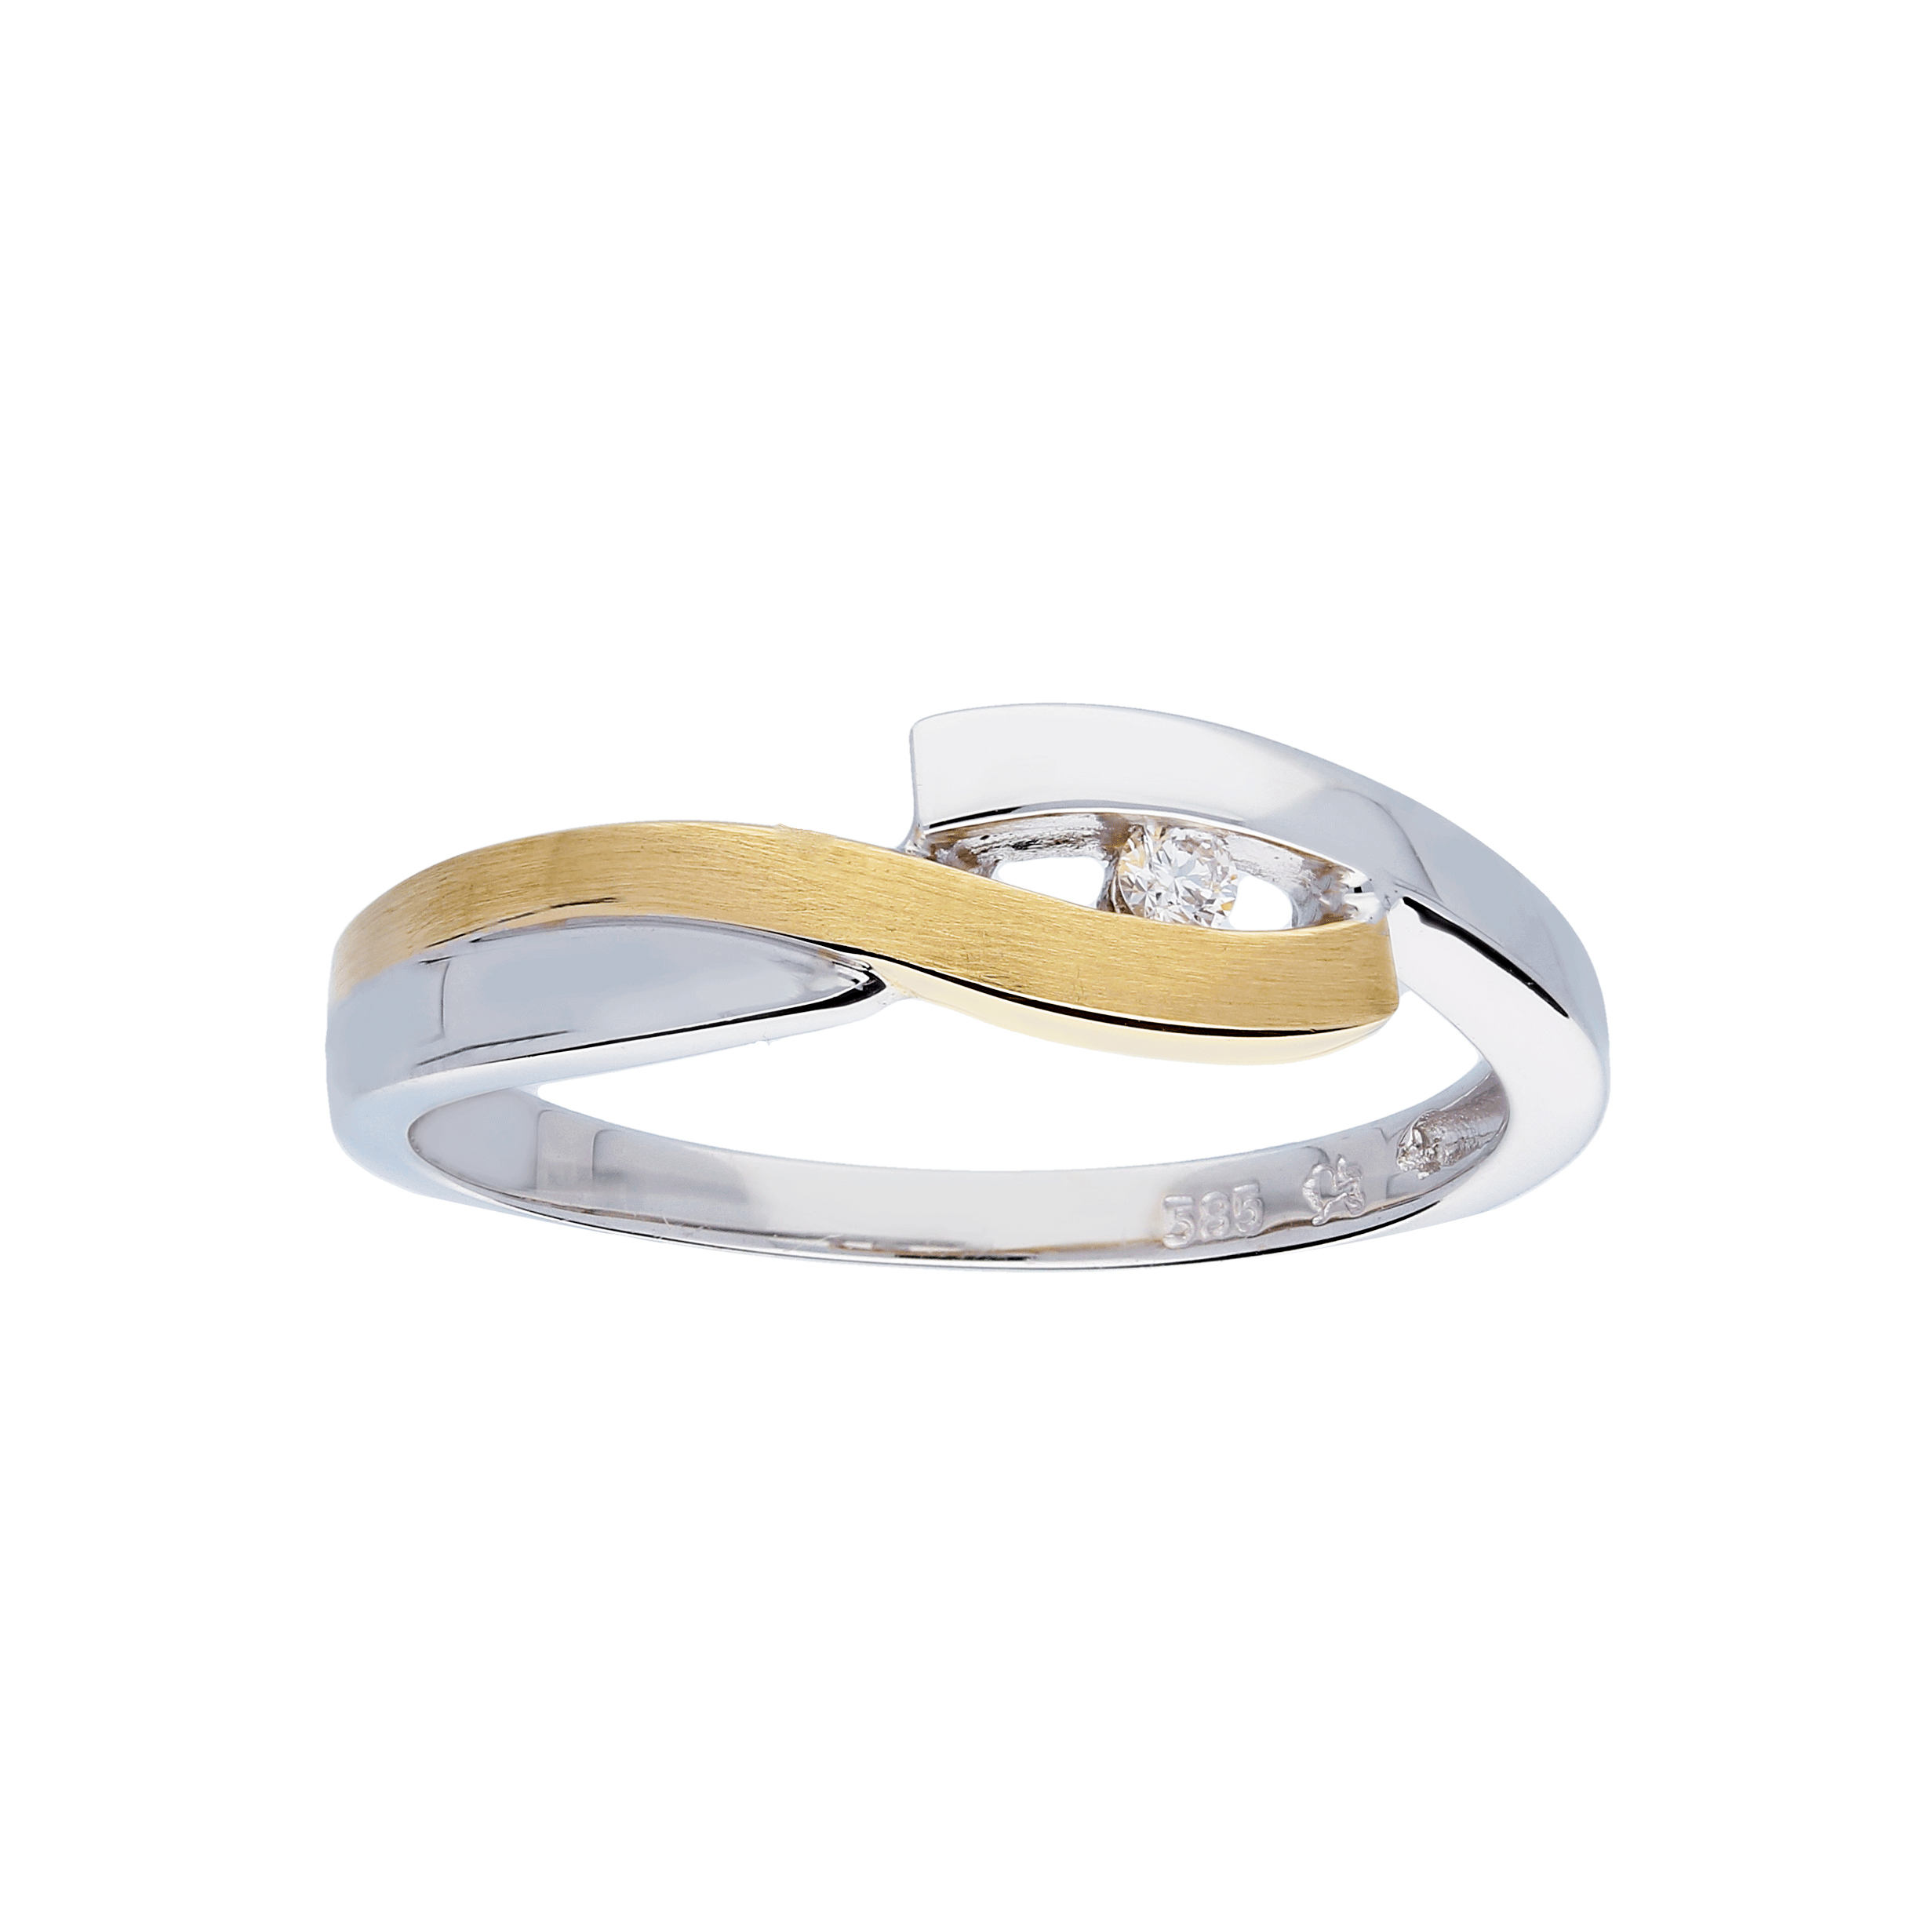 Glow Gouden Ring Bicolor Mat Glanzend Diamant 1 0.03ct G si 214.5215.52